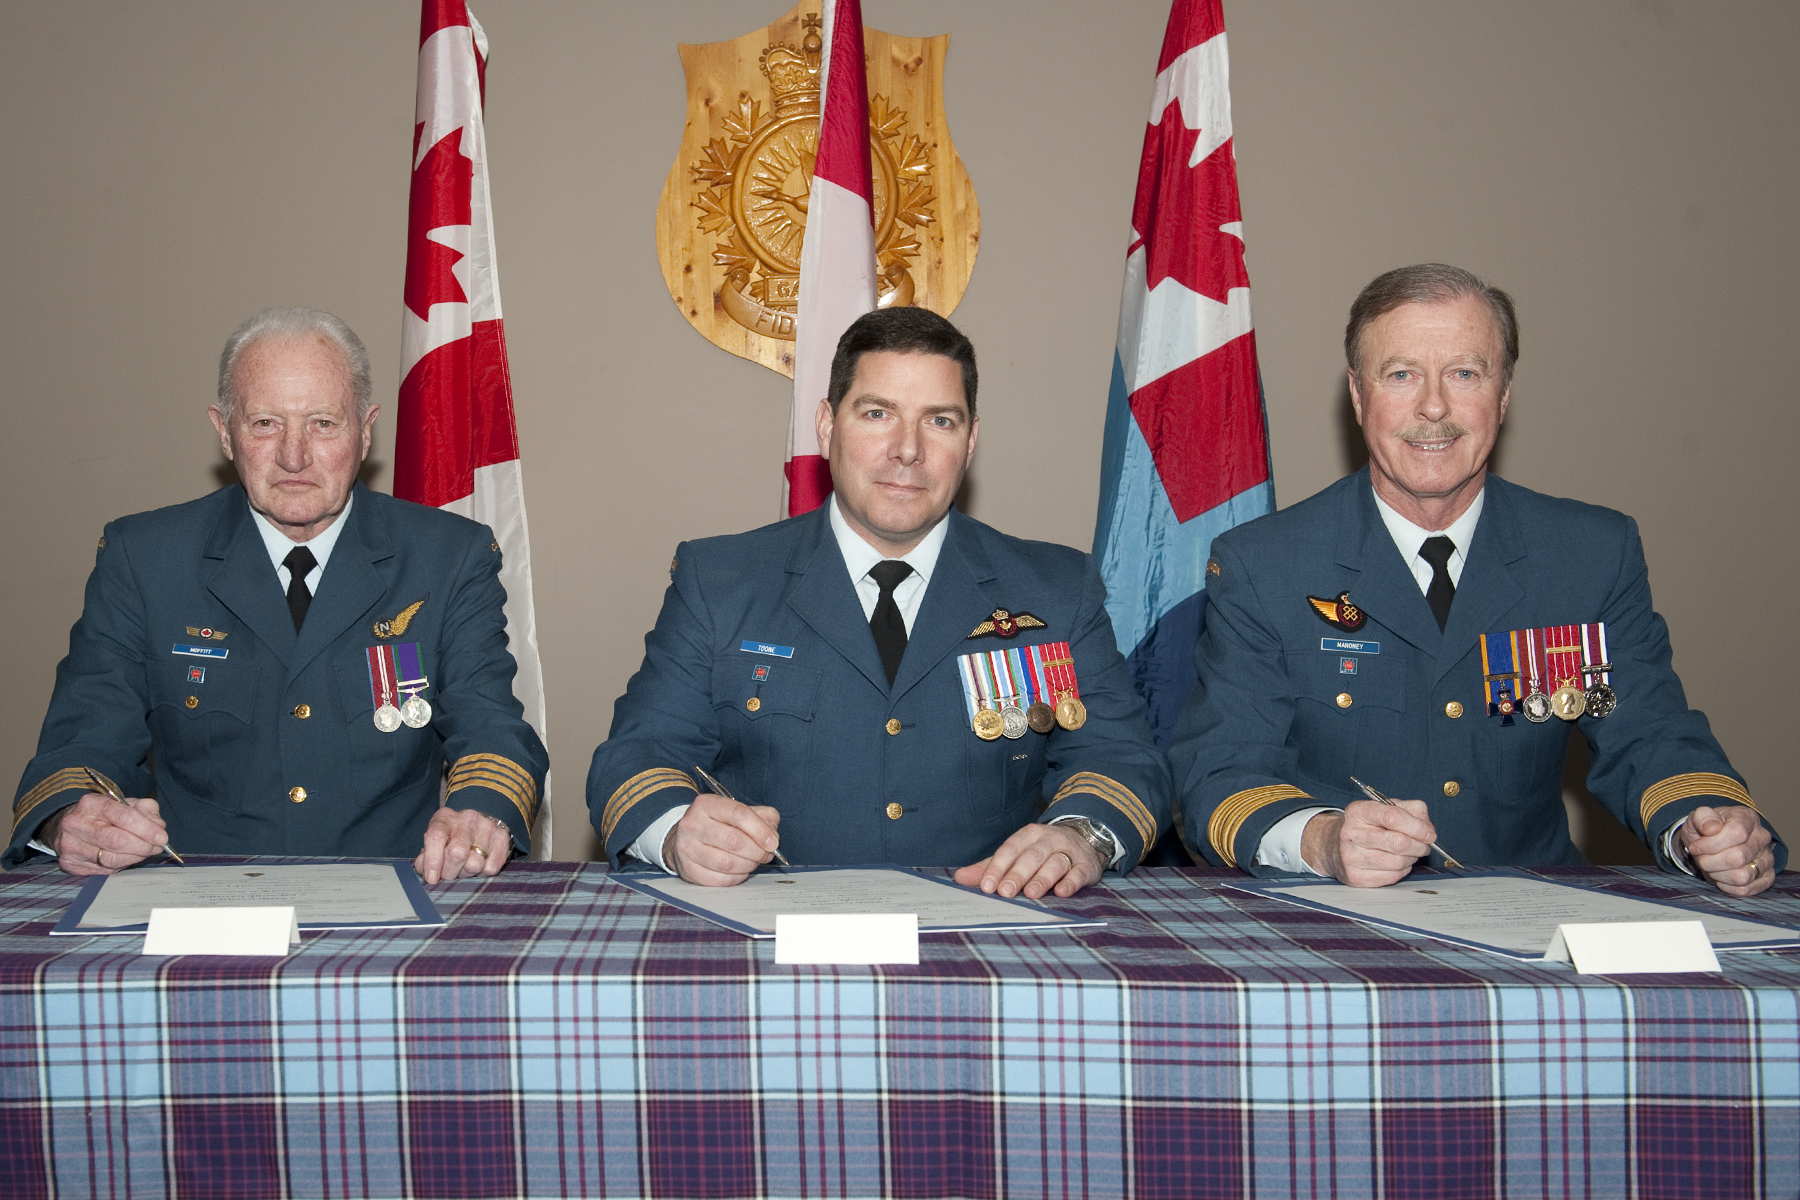 Lieutenant-Colonel Kevin Toone, then-commander of 9 Wing Gander, presides over the wing's honorary colonel change of appointment ceremony during which Honorary Colonel Fred Moffitt (left) took over the post from Honorary Colonel Bill Mahoney (right). The ceremony took place January 21, 2015. Honorary Colonel Moffitt, who served in the Royal Air Force, wears the Queen Elizabeth II Diamond Jubilee Medal, the British General Service Medal and his RAF navigator wing. PHOTO: Master Corporal Sue Howell